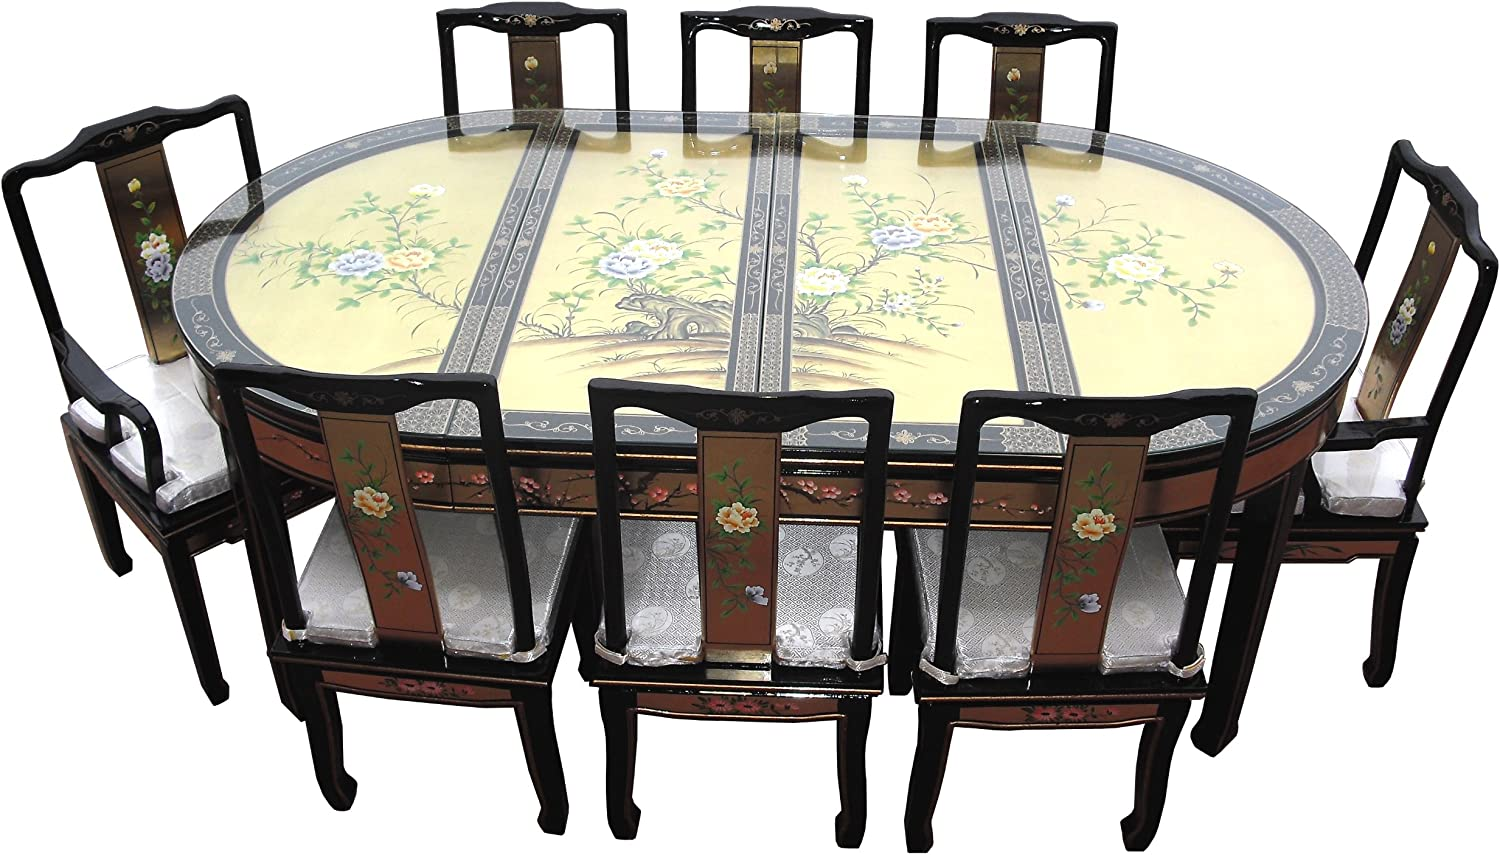 Chinese Oriental Furniture Genuine Gold Leaf 8 Seater Dining Table Set Amazon Co Uk Kitchen Home